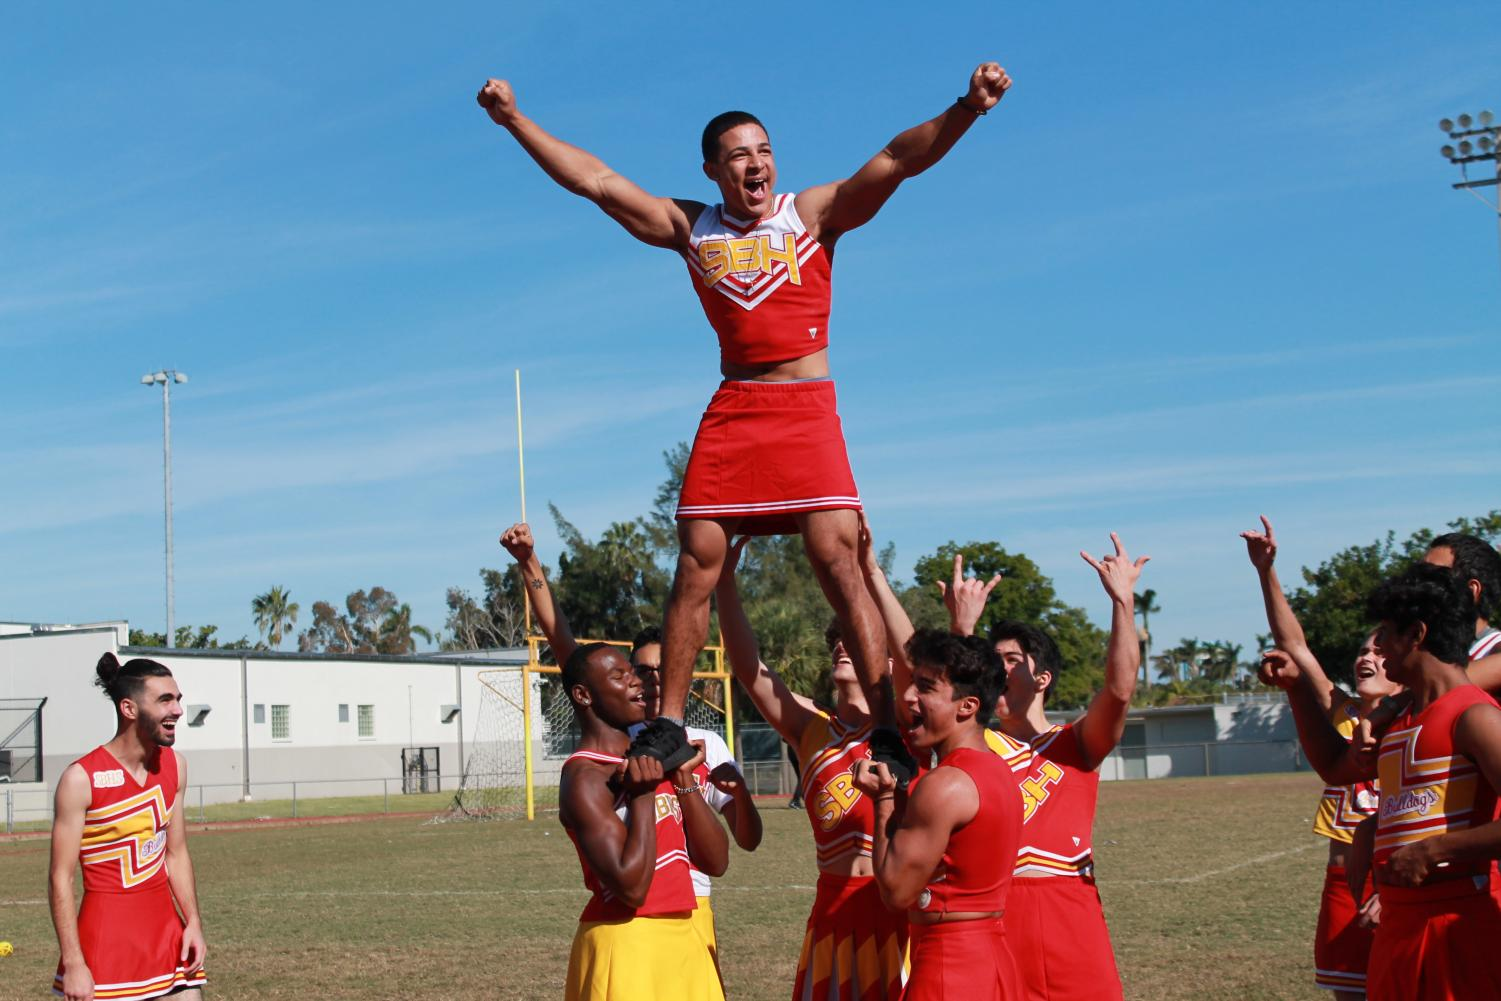 In this picture, Joel Pardilla,  is in a pyramid cheering.